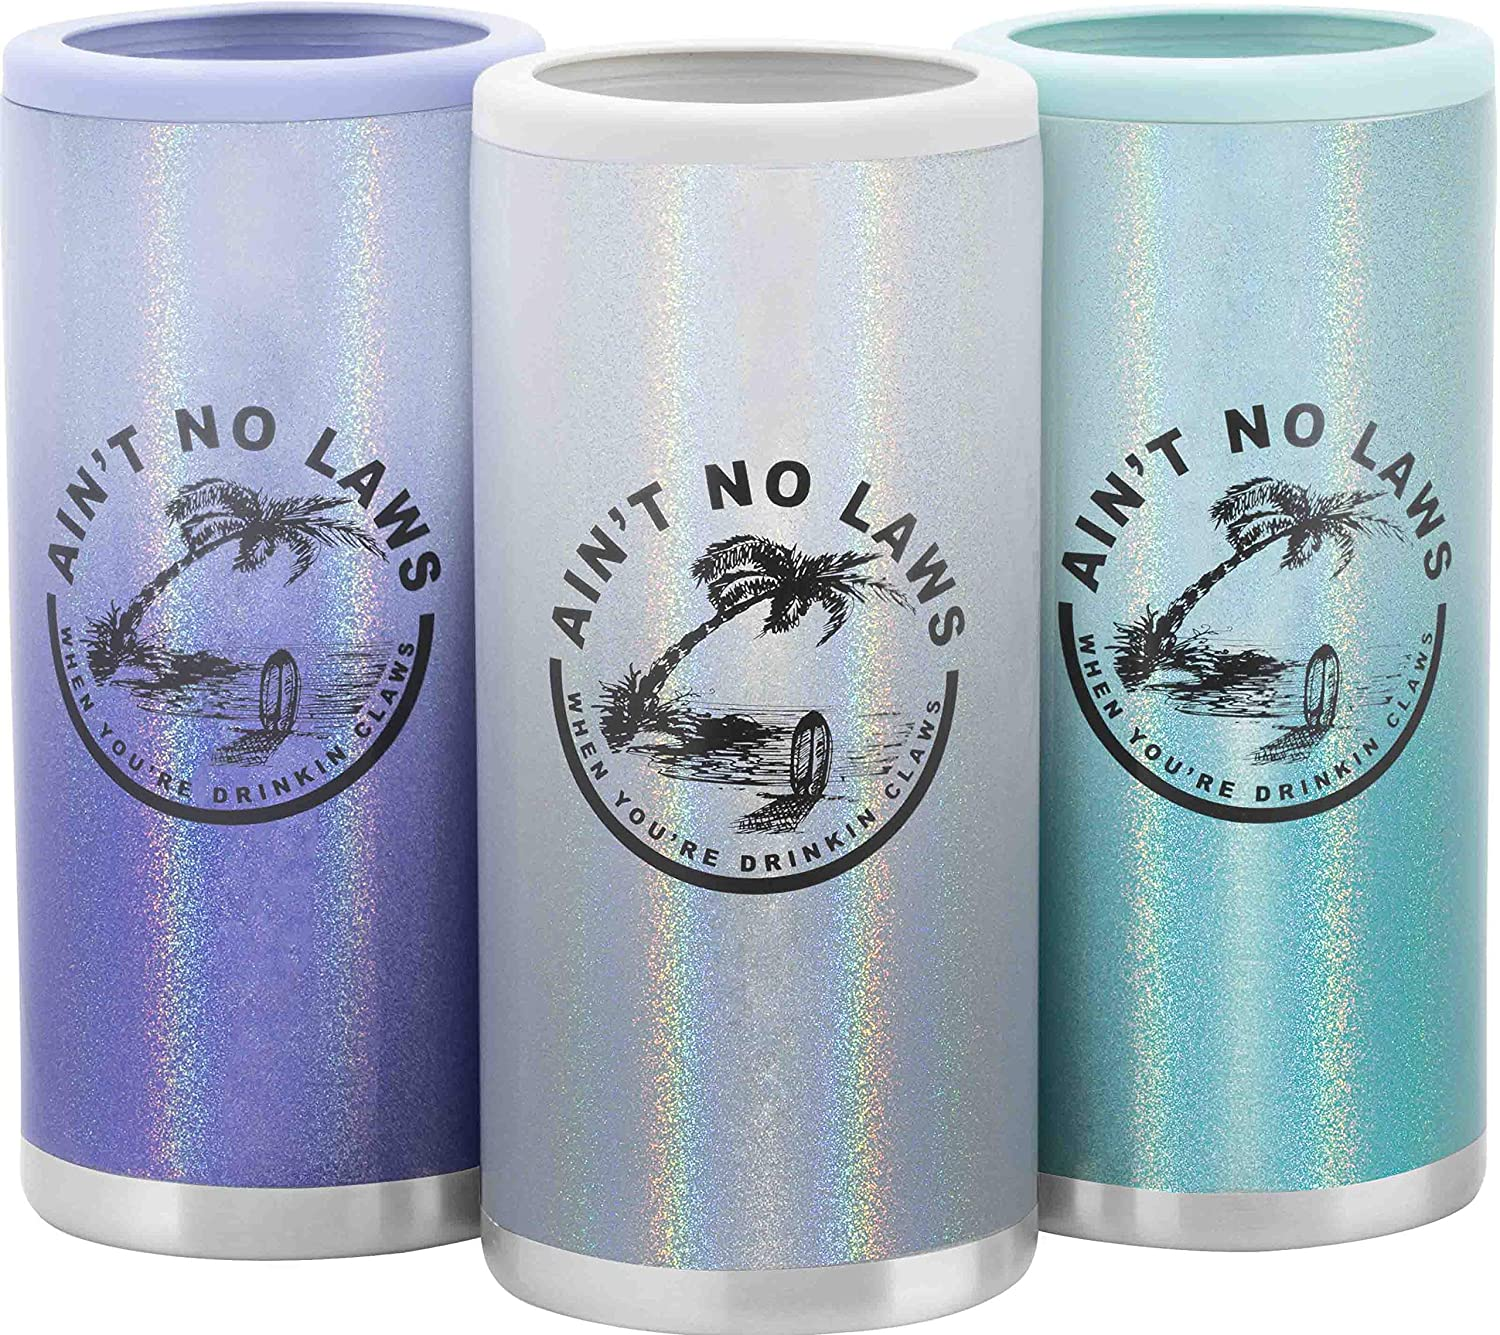 12oz Slim 18/8 Stainless Steel Can Cooler ~Ain't No Laws-When You're Drinking Claws~ Skinny Double Wall Vacuum Insulated Drink Holder By F-32 Signature Collection (12 Oz, White Gradient)